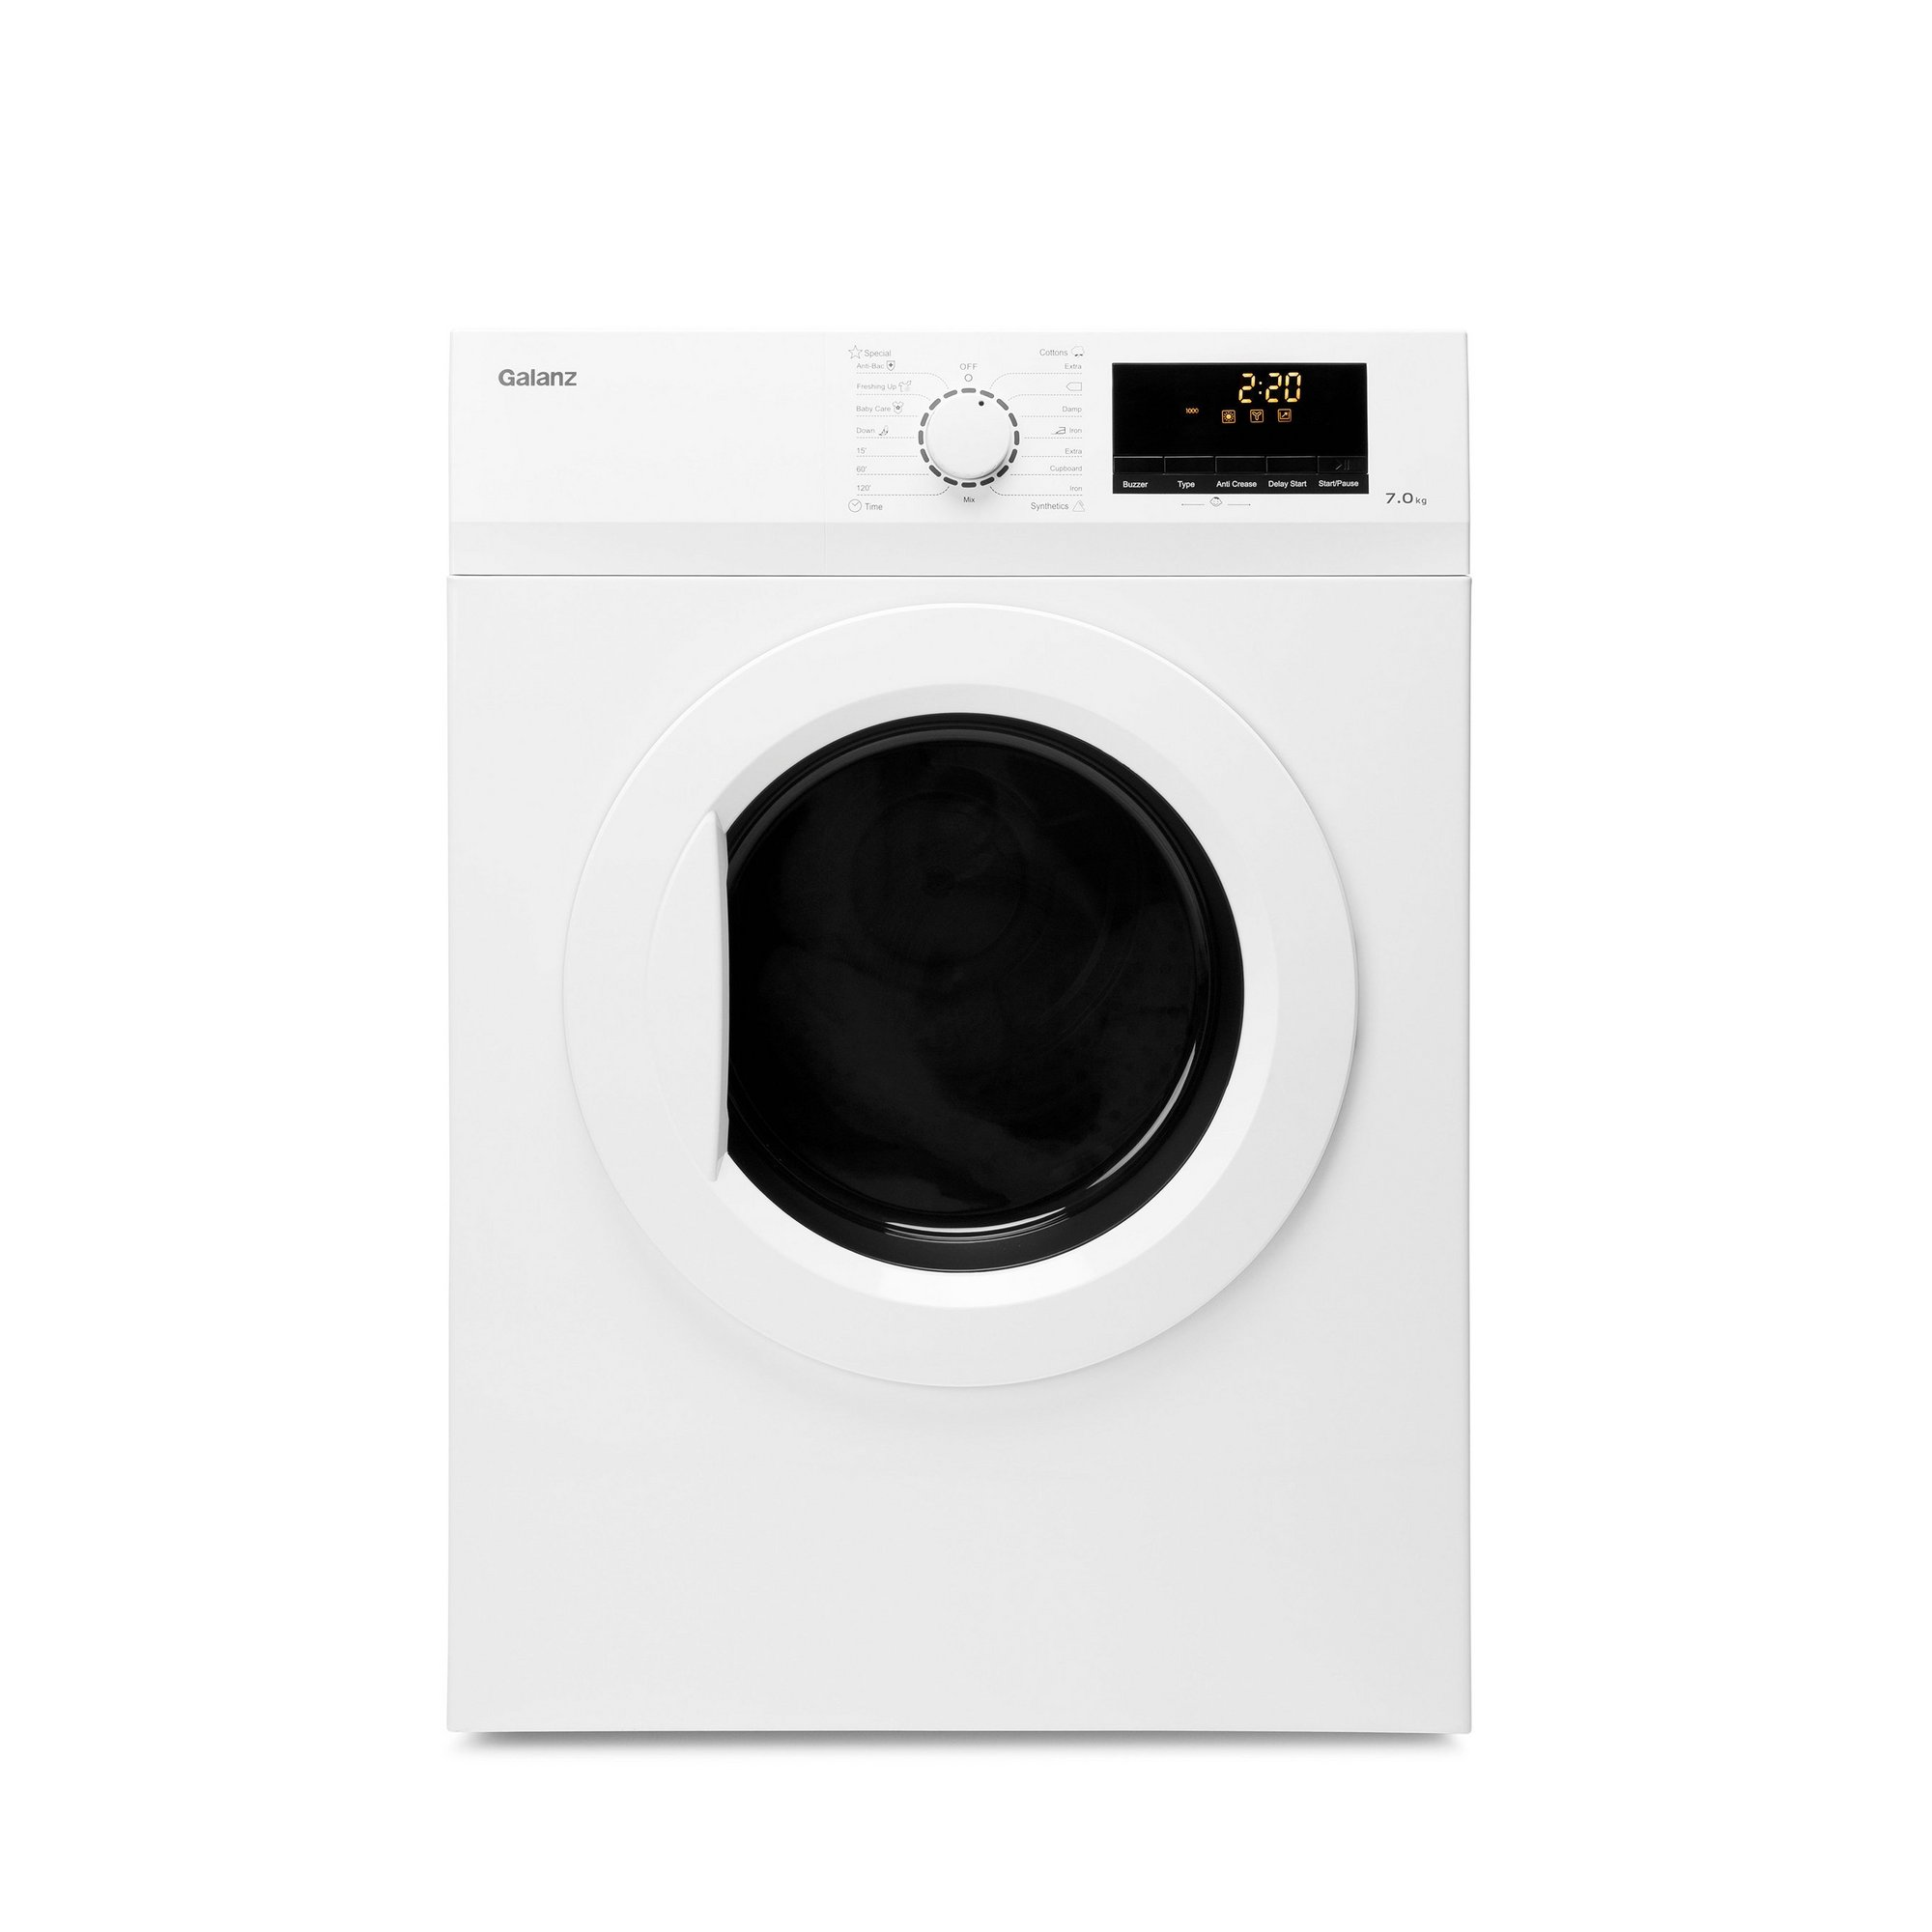 Image of Galanz 7kg Tumble Dryer